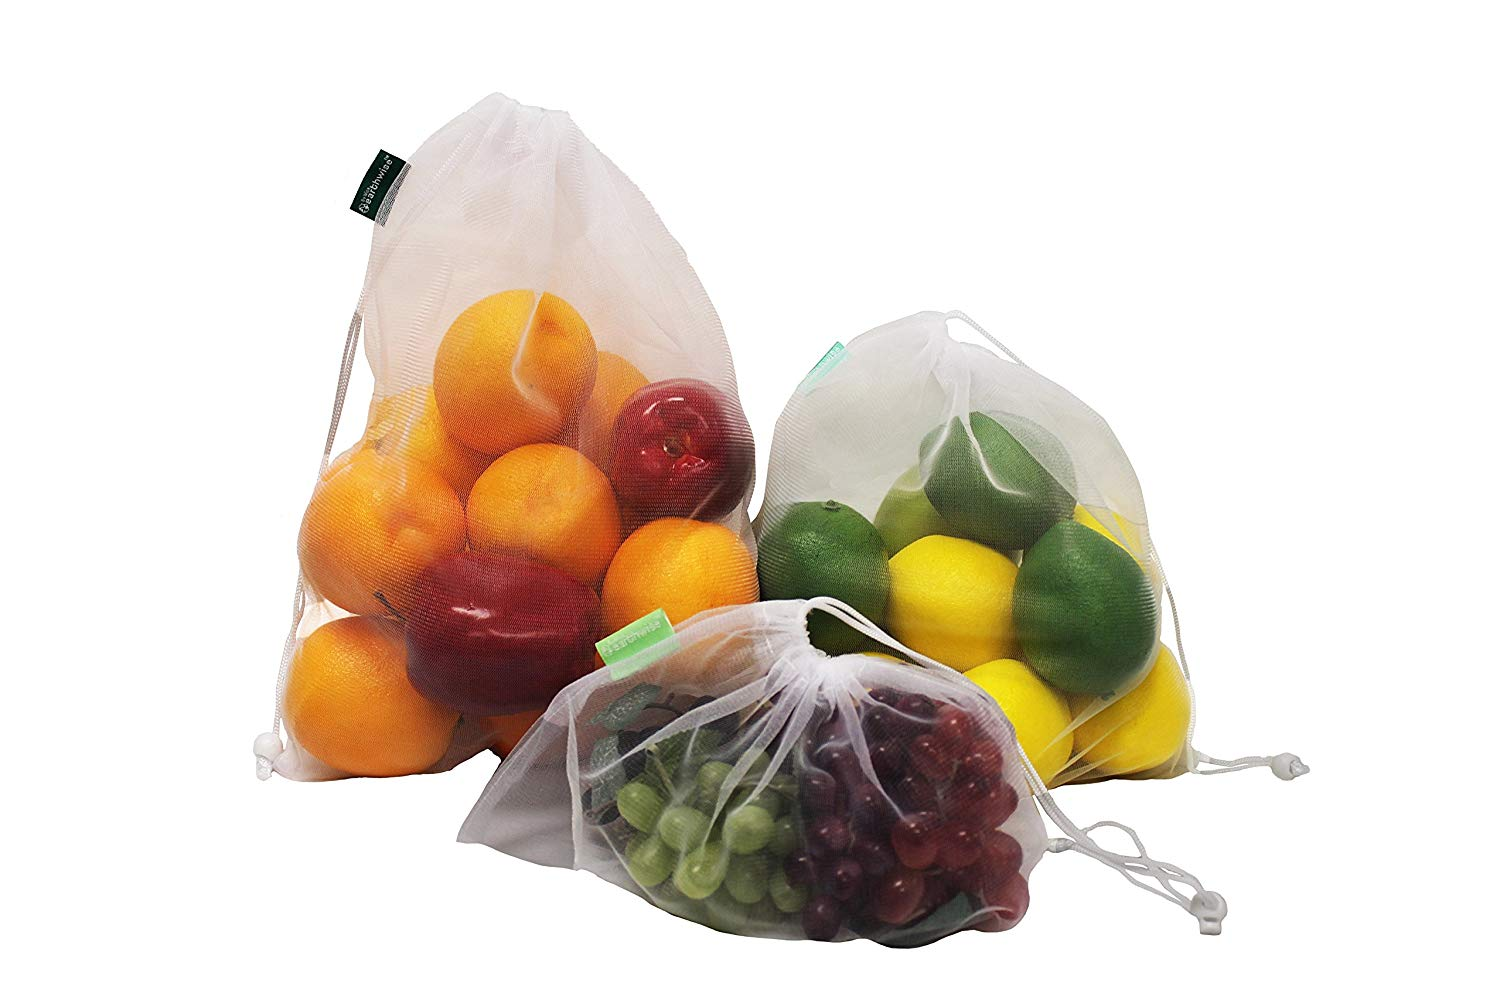 mesh reusable product bags of fruit